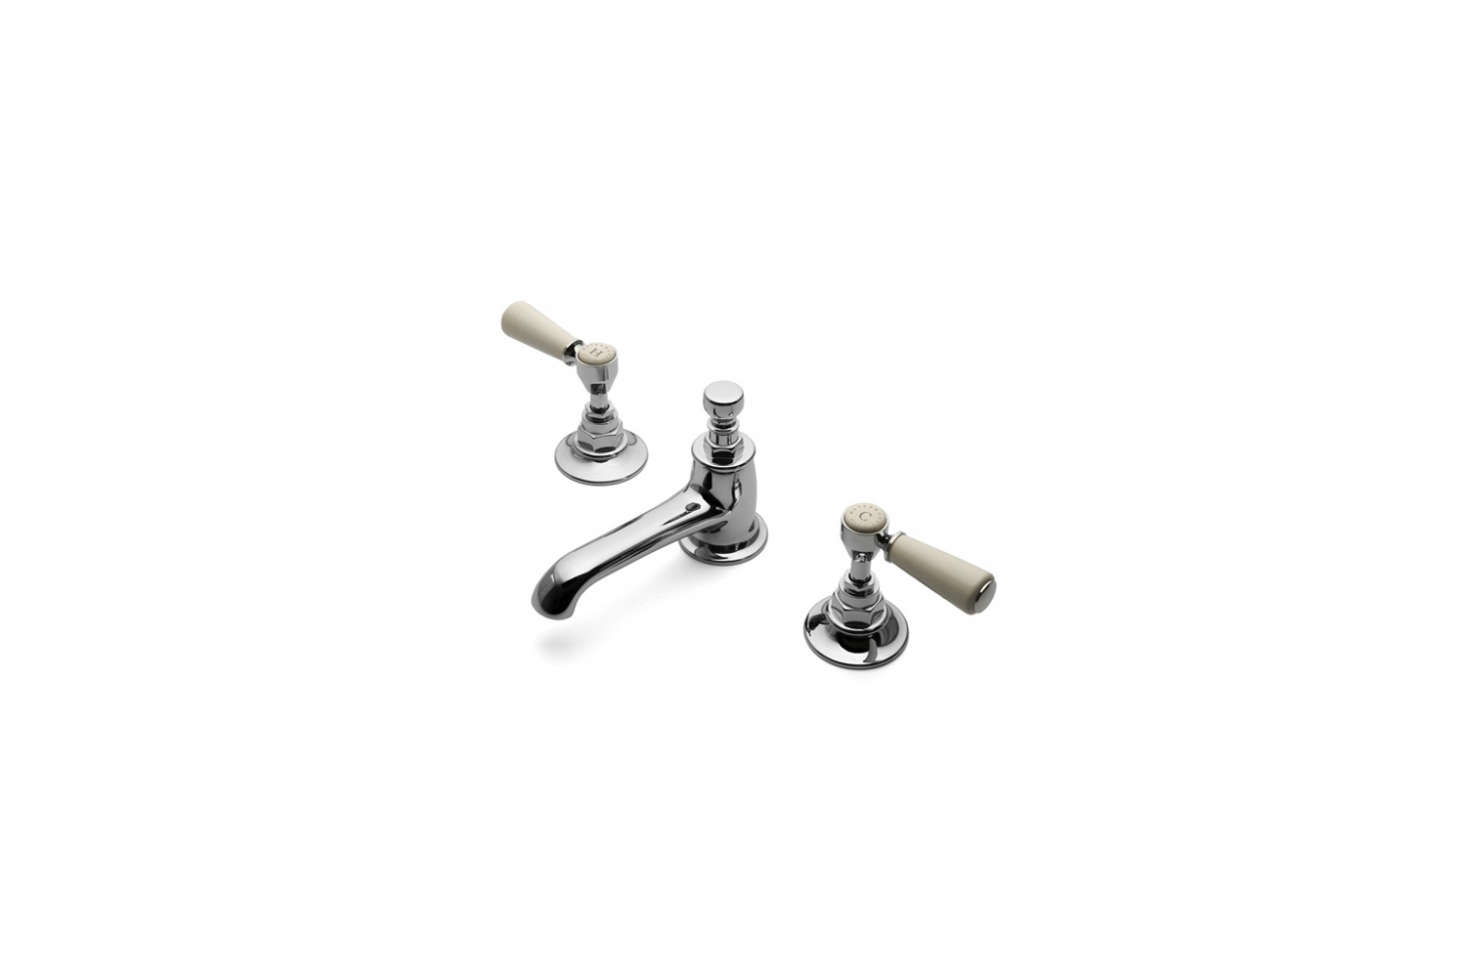 10 Easy Pieces: Traditional Single Spout Bath Faucets with Lever ...